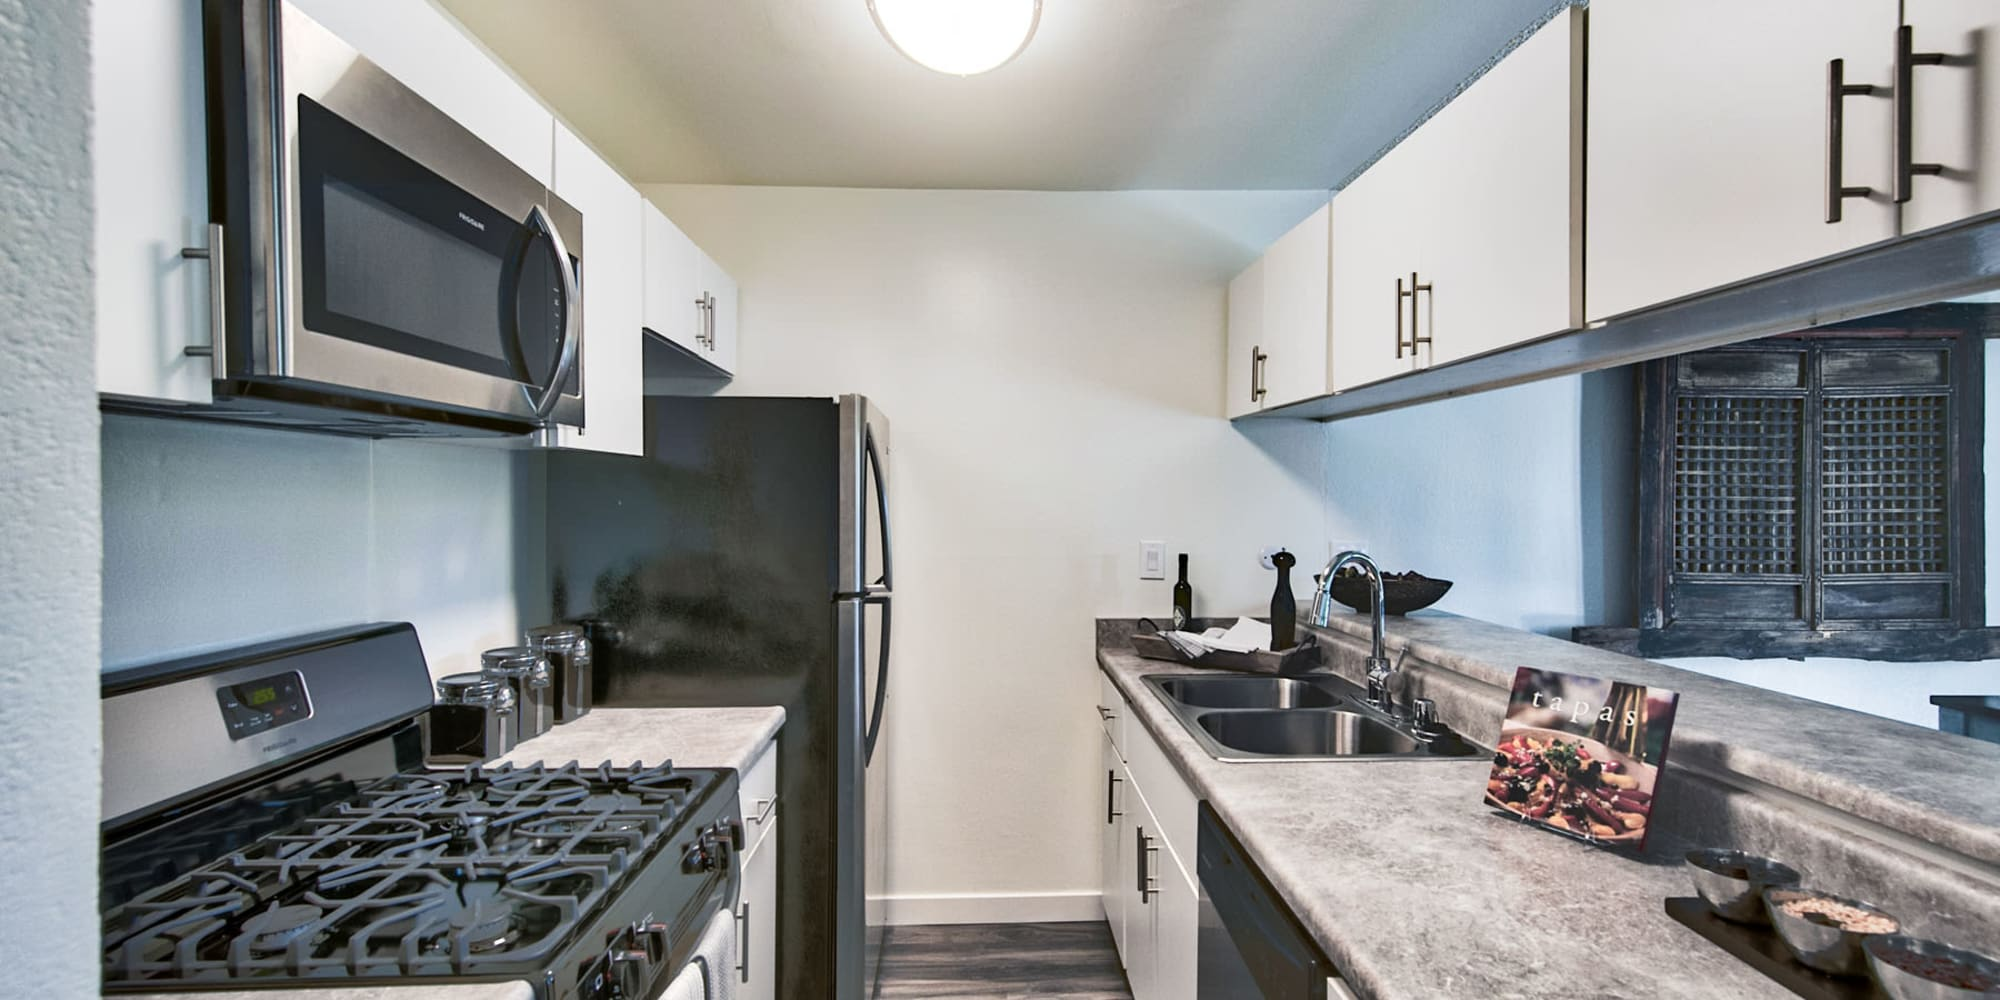 Stainless-steel appliances and granite countertops in a model apartment's kitchen at Mediterranean Village Apartments in Costa Mesa, California